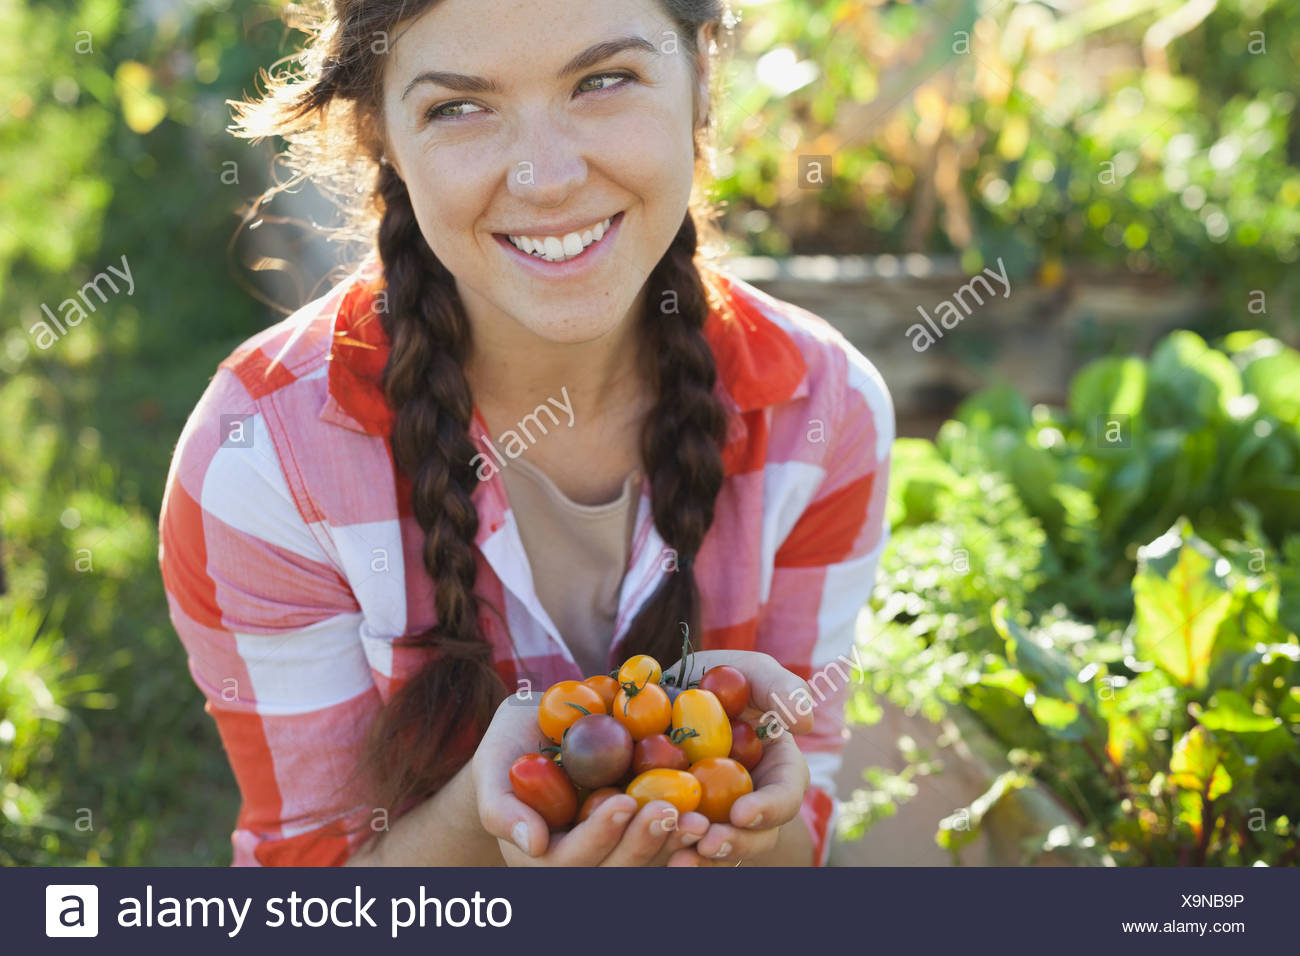 Smiling woman with handful of cherry tomatoes - Stock Image